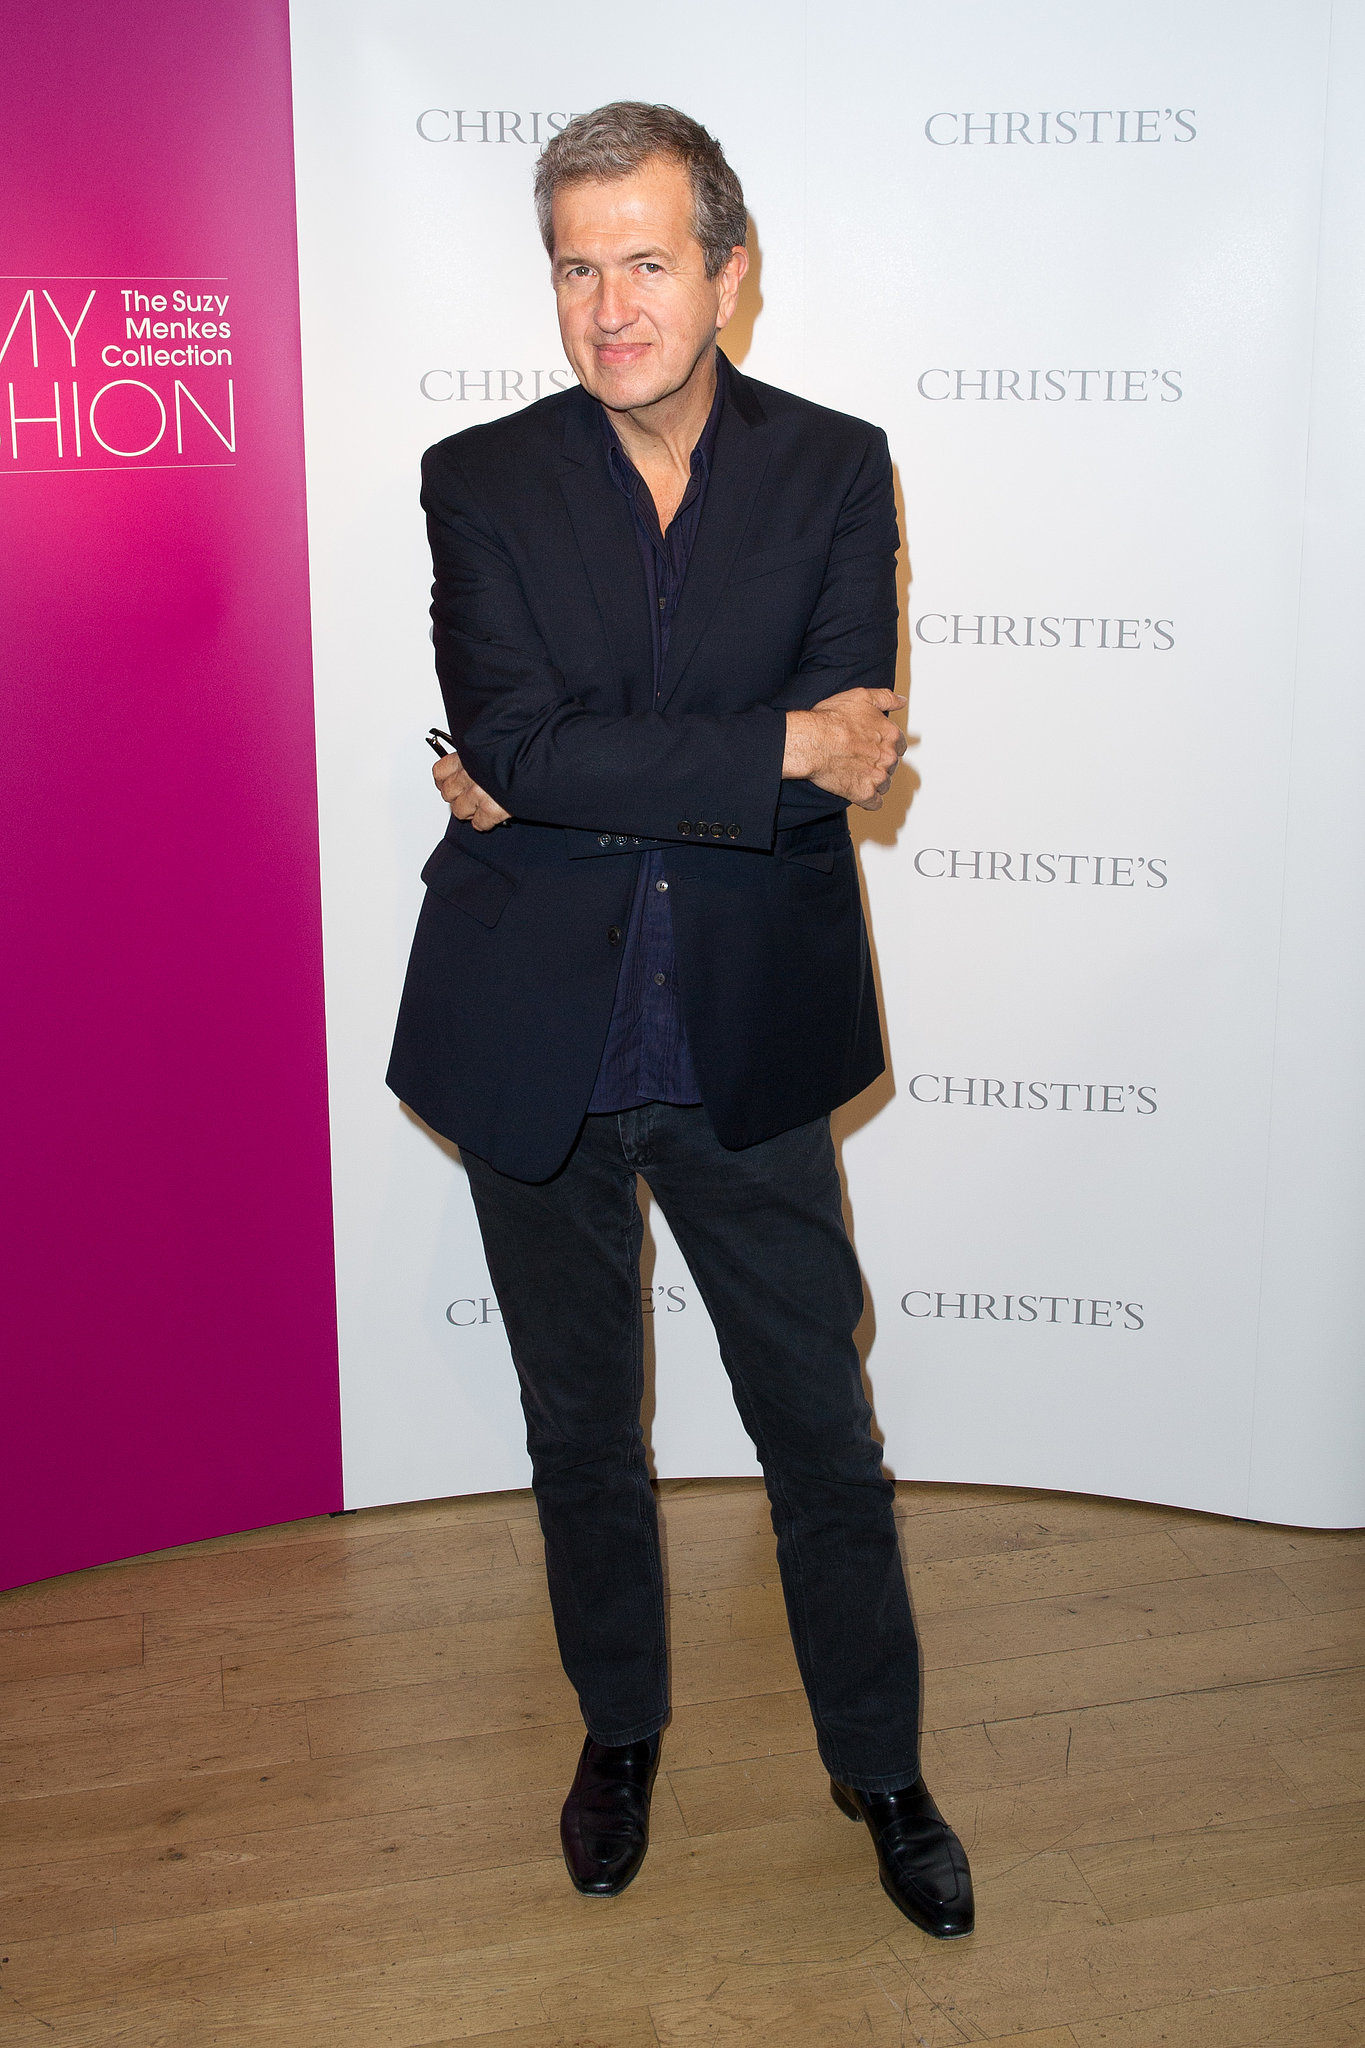 At the opening party for In My Fashion: The Suzy Menkes Collection, Mario Testino looked dapper in darks.